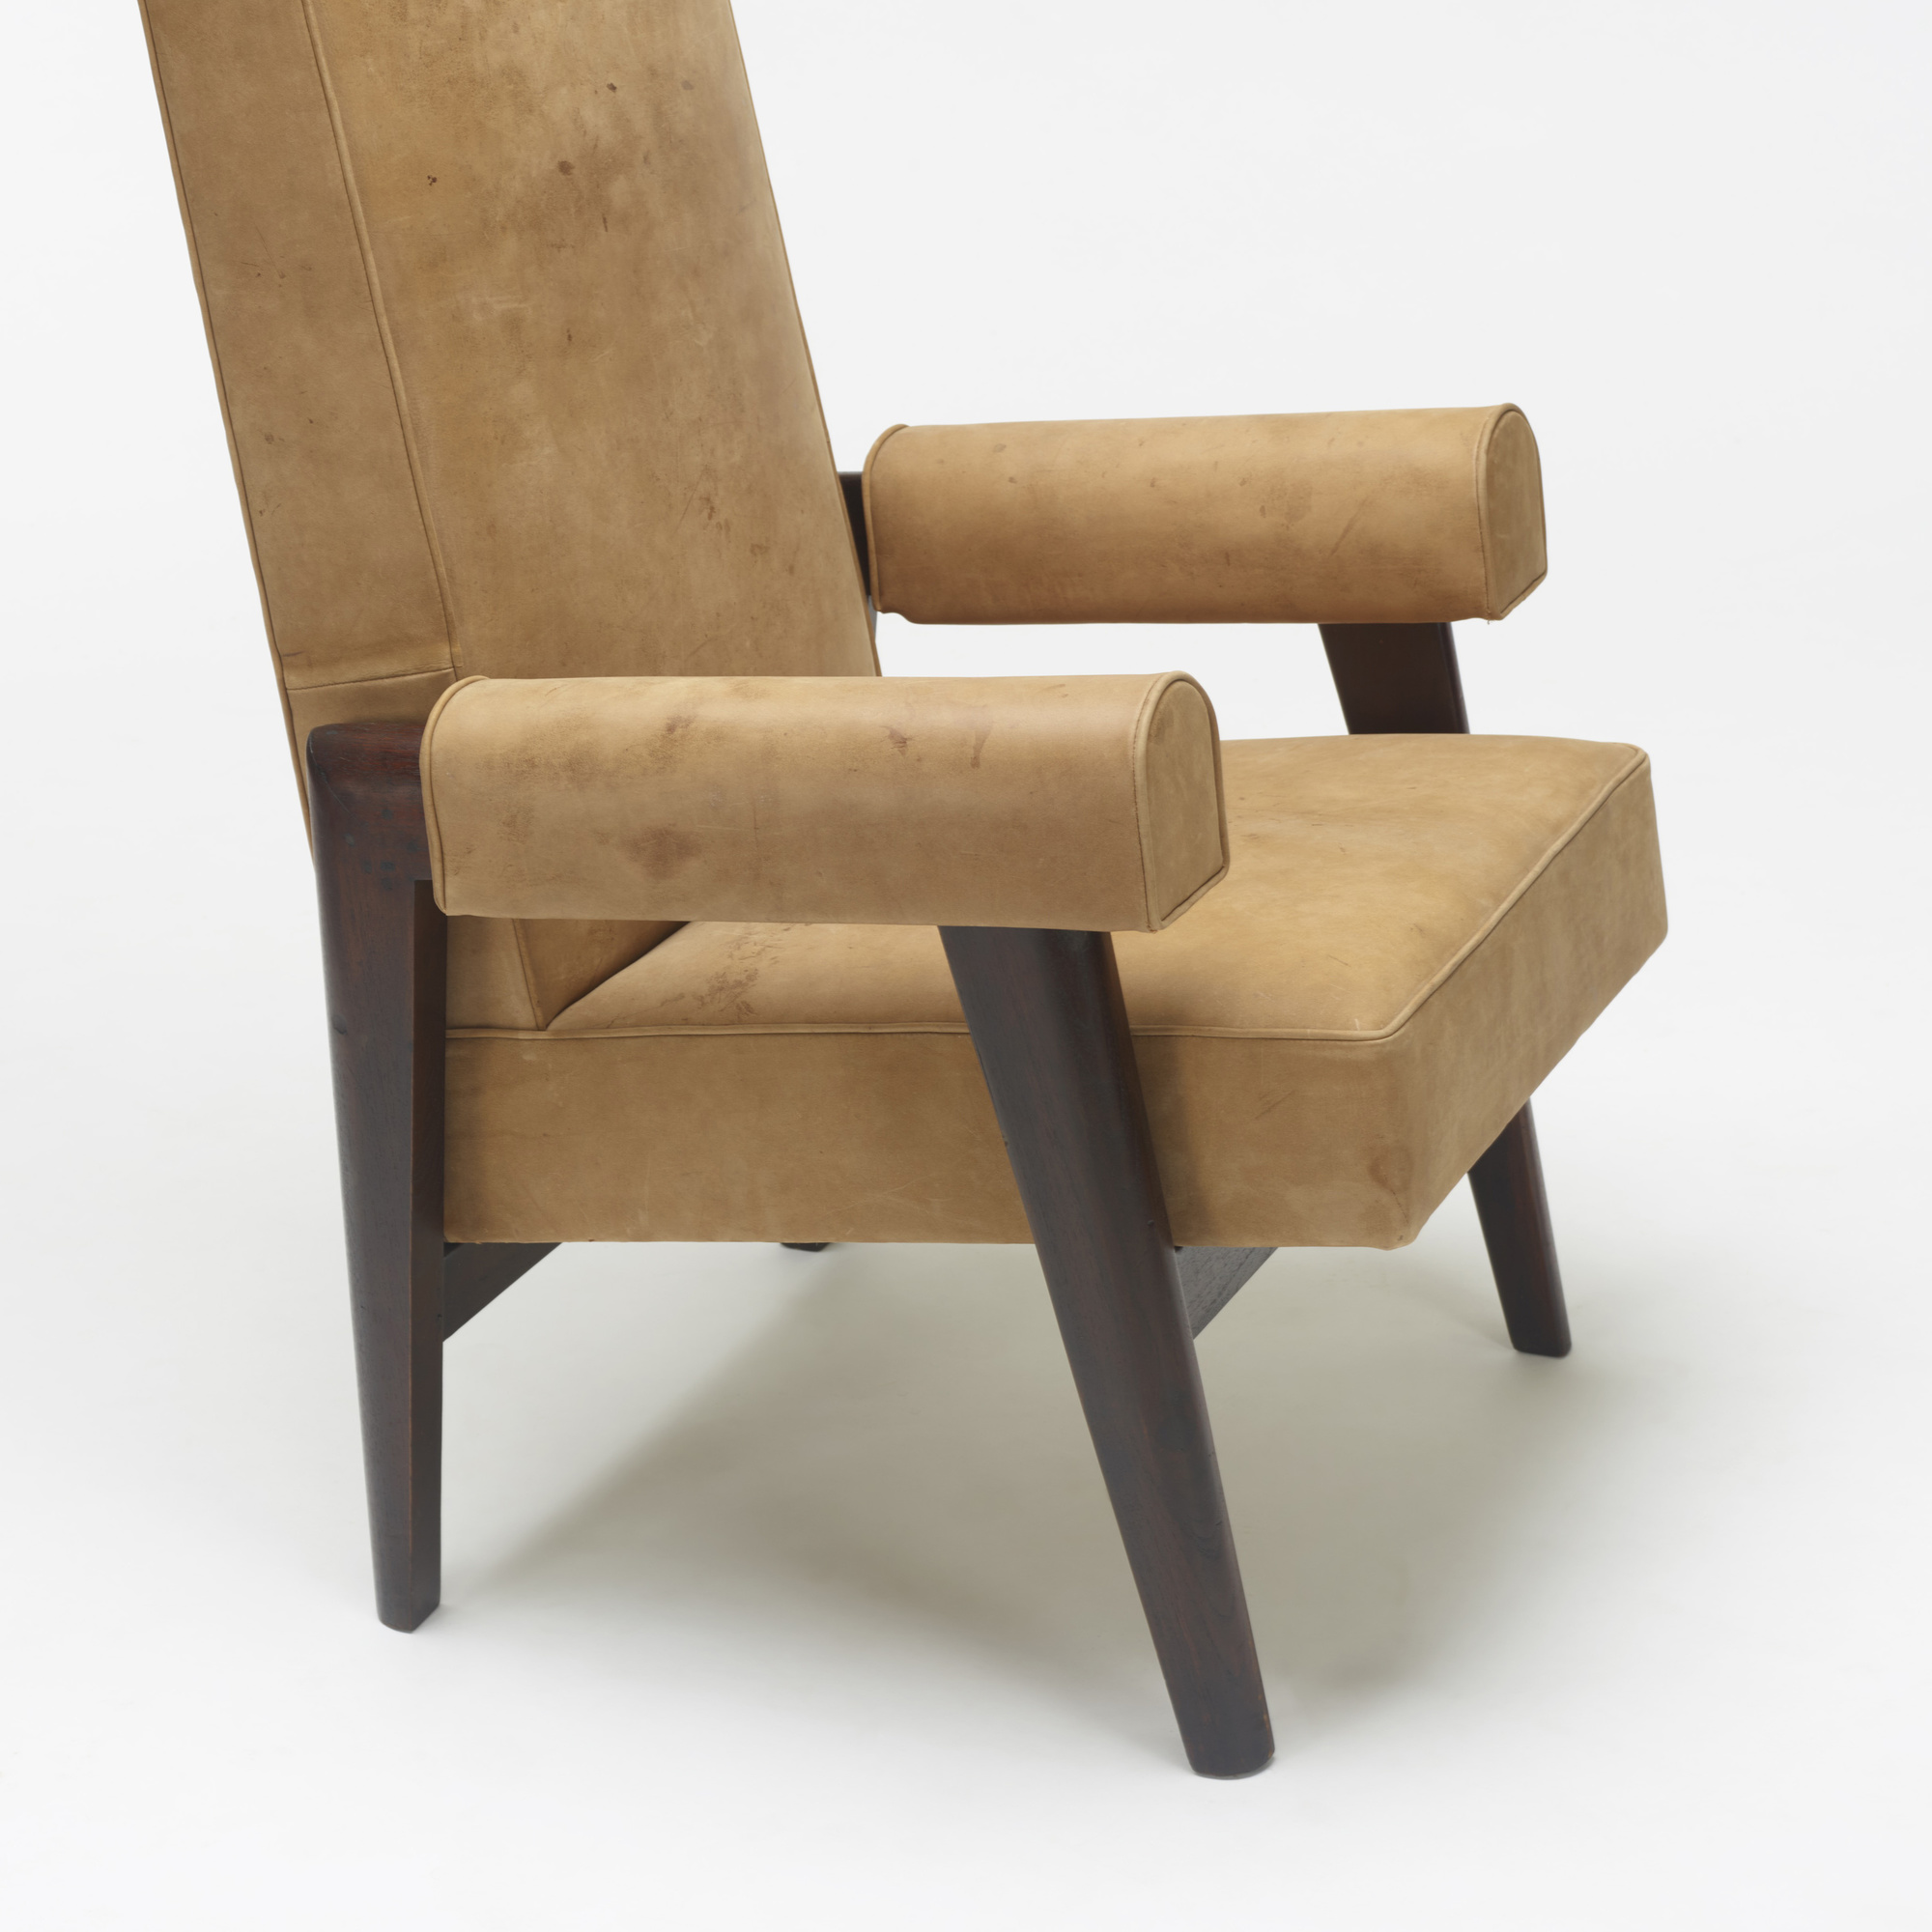 110: Le Corbusier and Pierre Jeanneret / Judge's armchair from the High Court, Chandigarh (3 of 3)